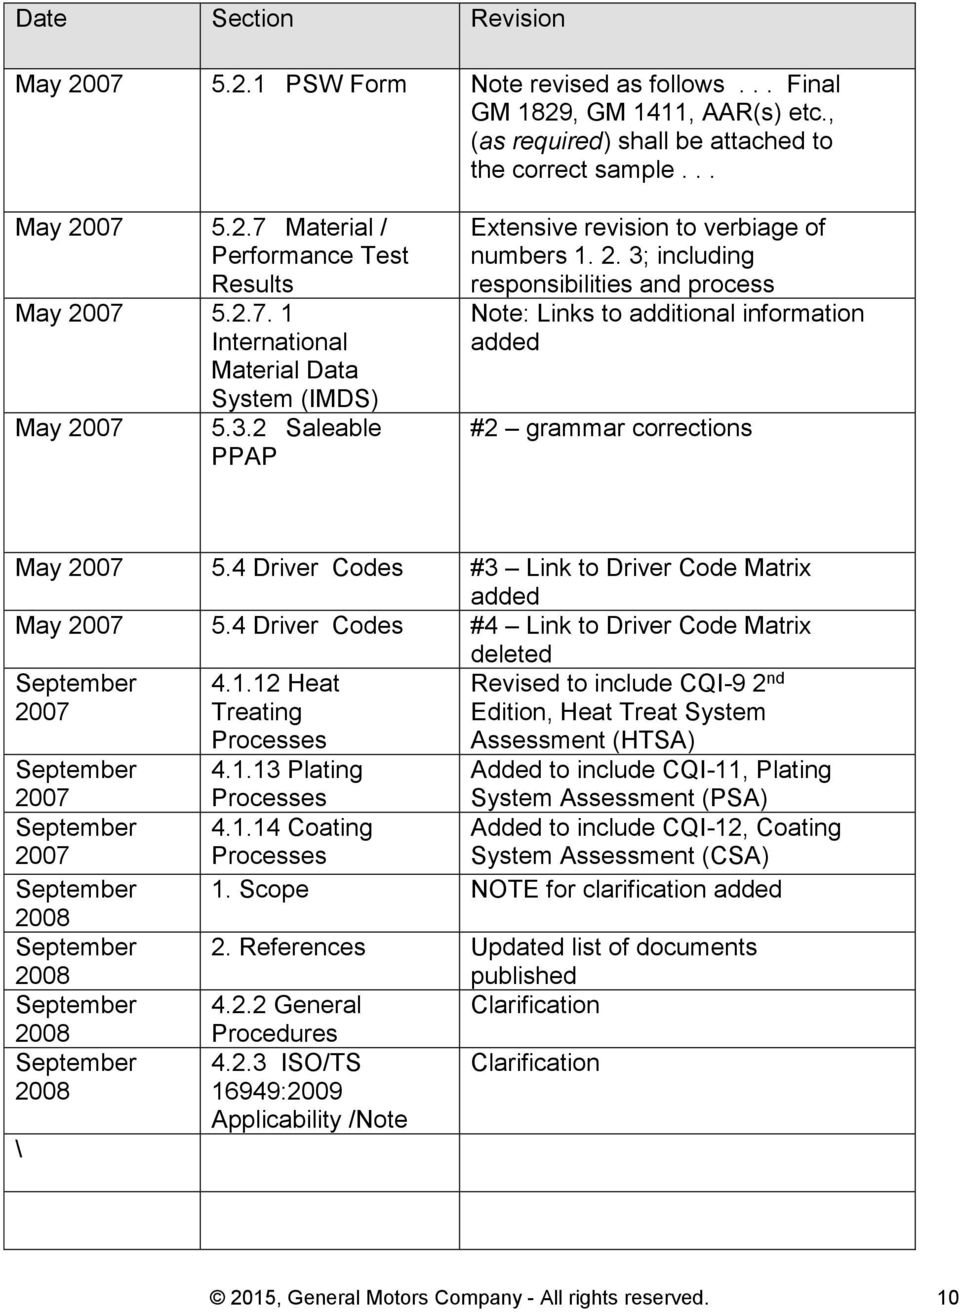 4 Driver Codes #3 Link to Driver Code Matrix added May 2007 5.